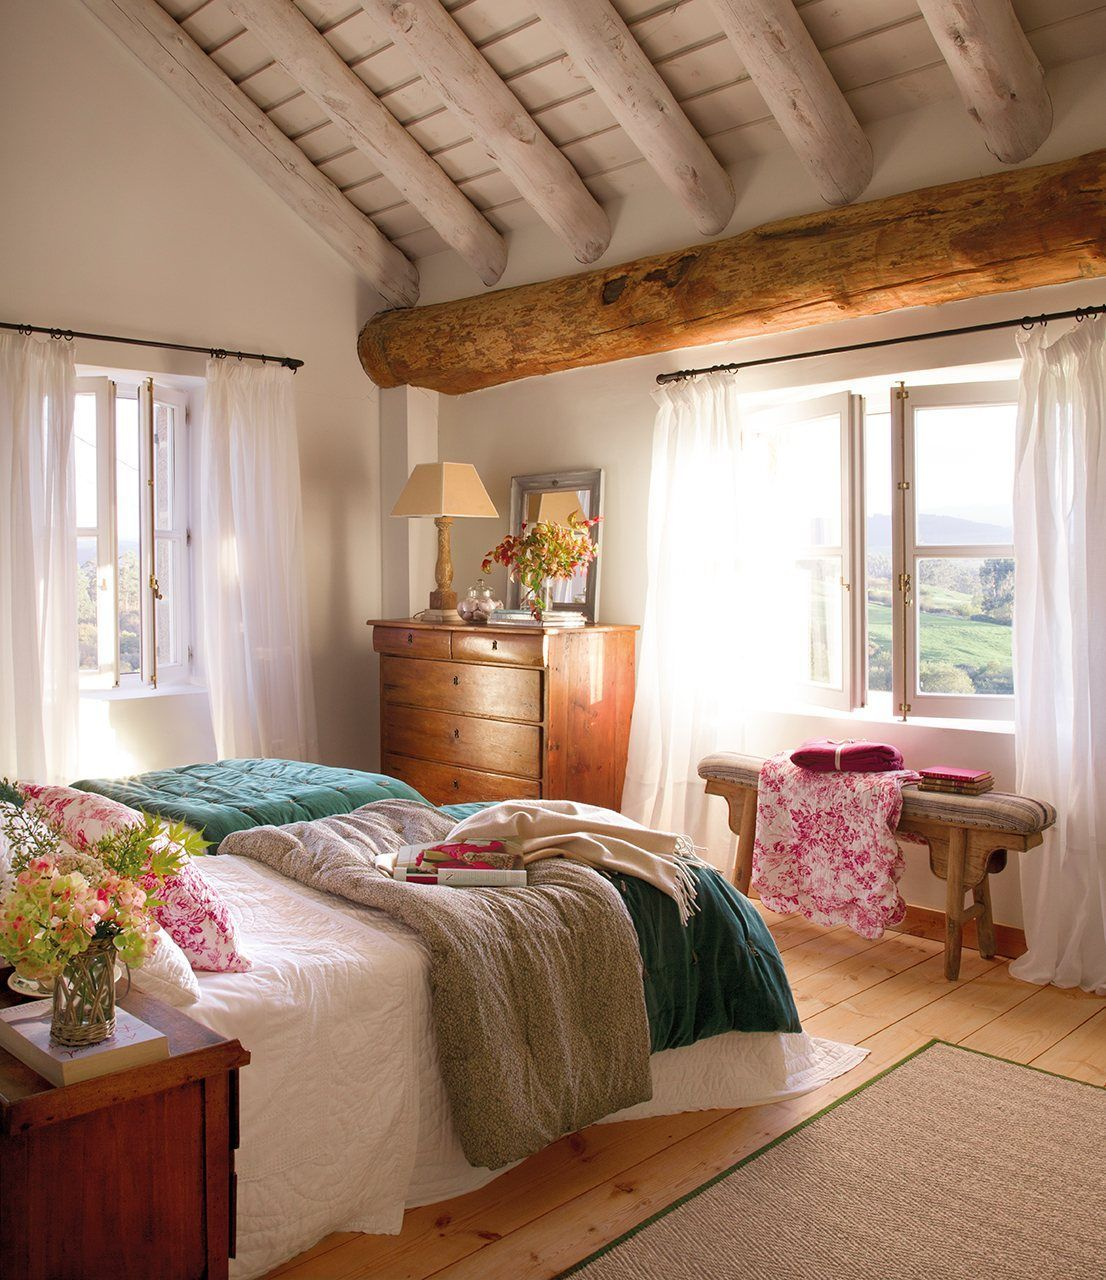 Principal bedroom in an historic home with an interior inspired by - Cozy